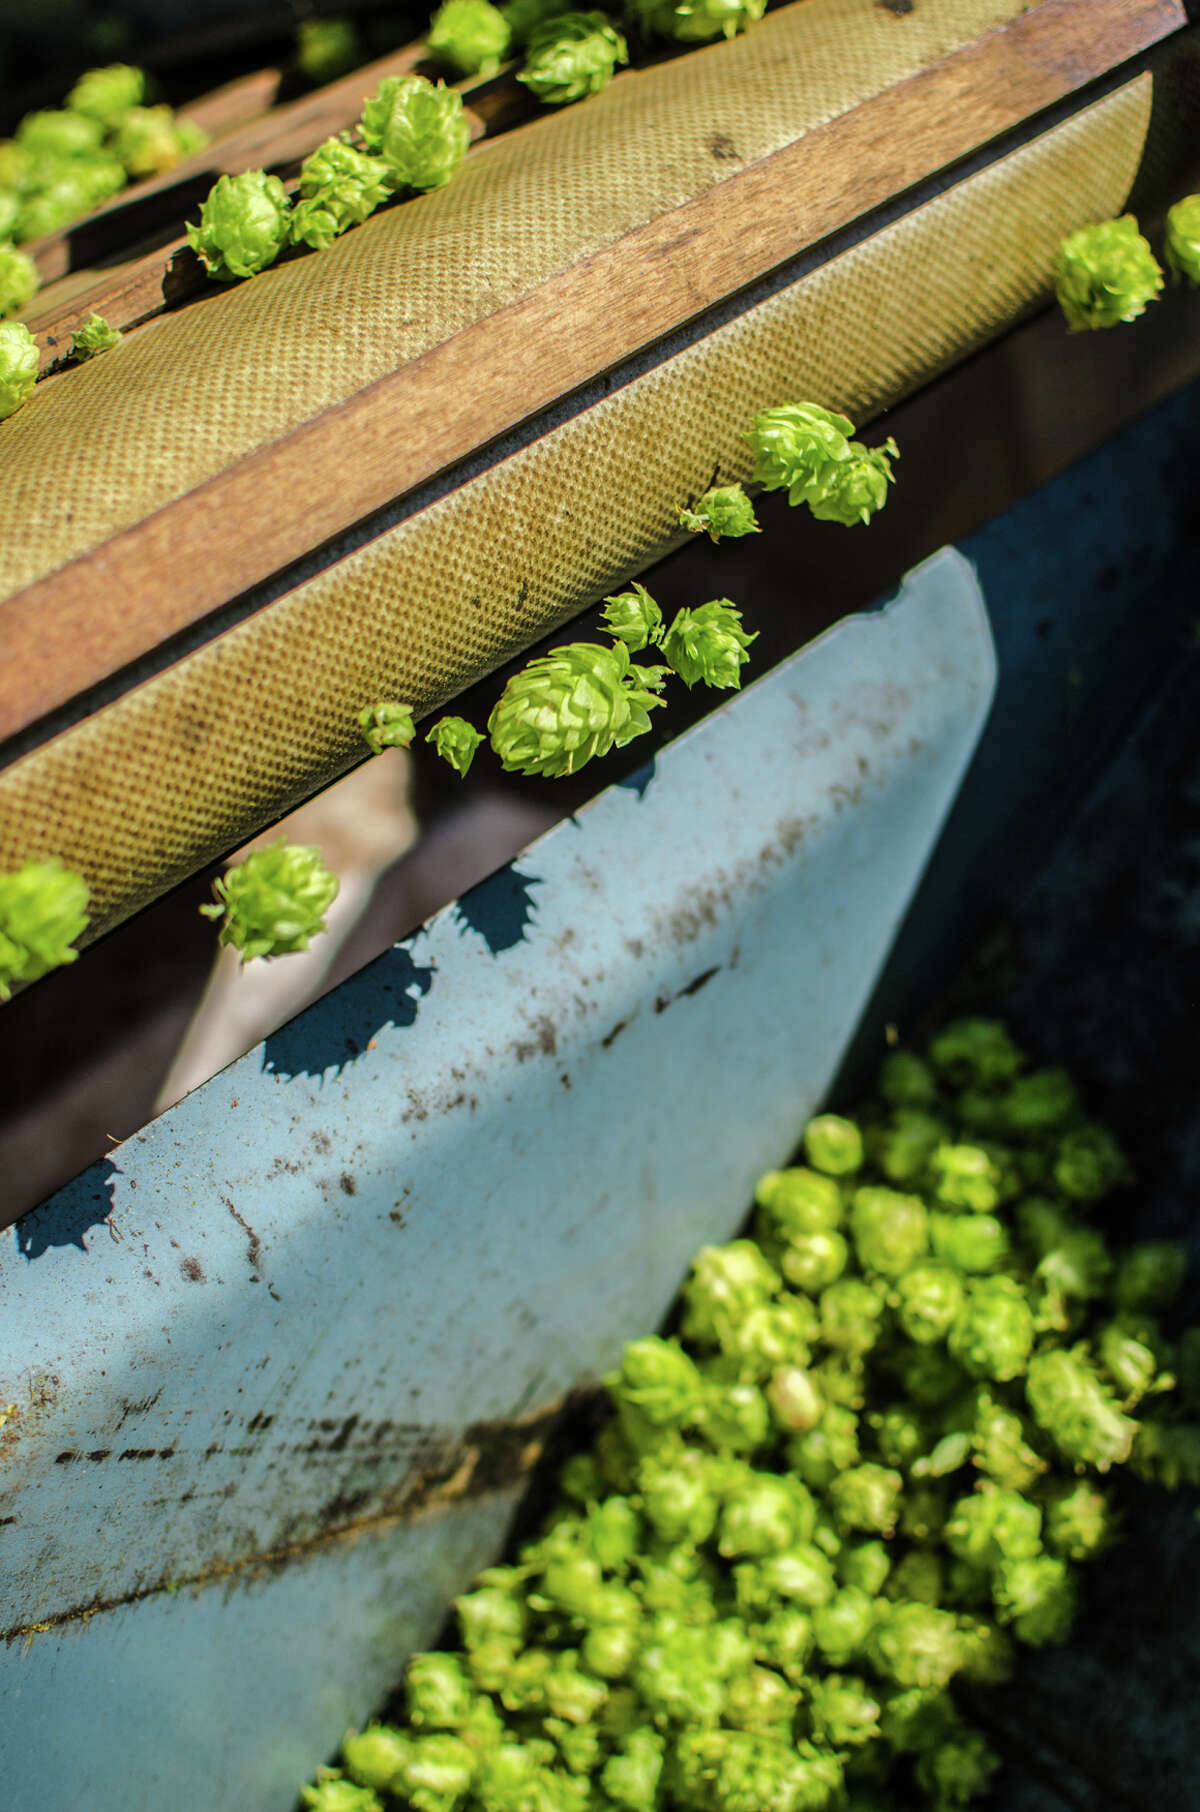 Harvested hops are sent down a series of conveyor belts and the flowers are collected into sacks at Hops-Meister Farm in Clear Lake.